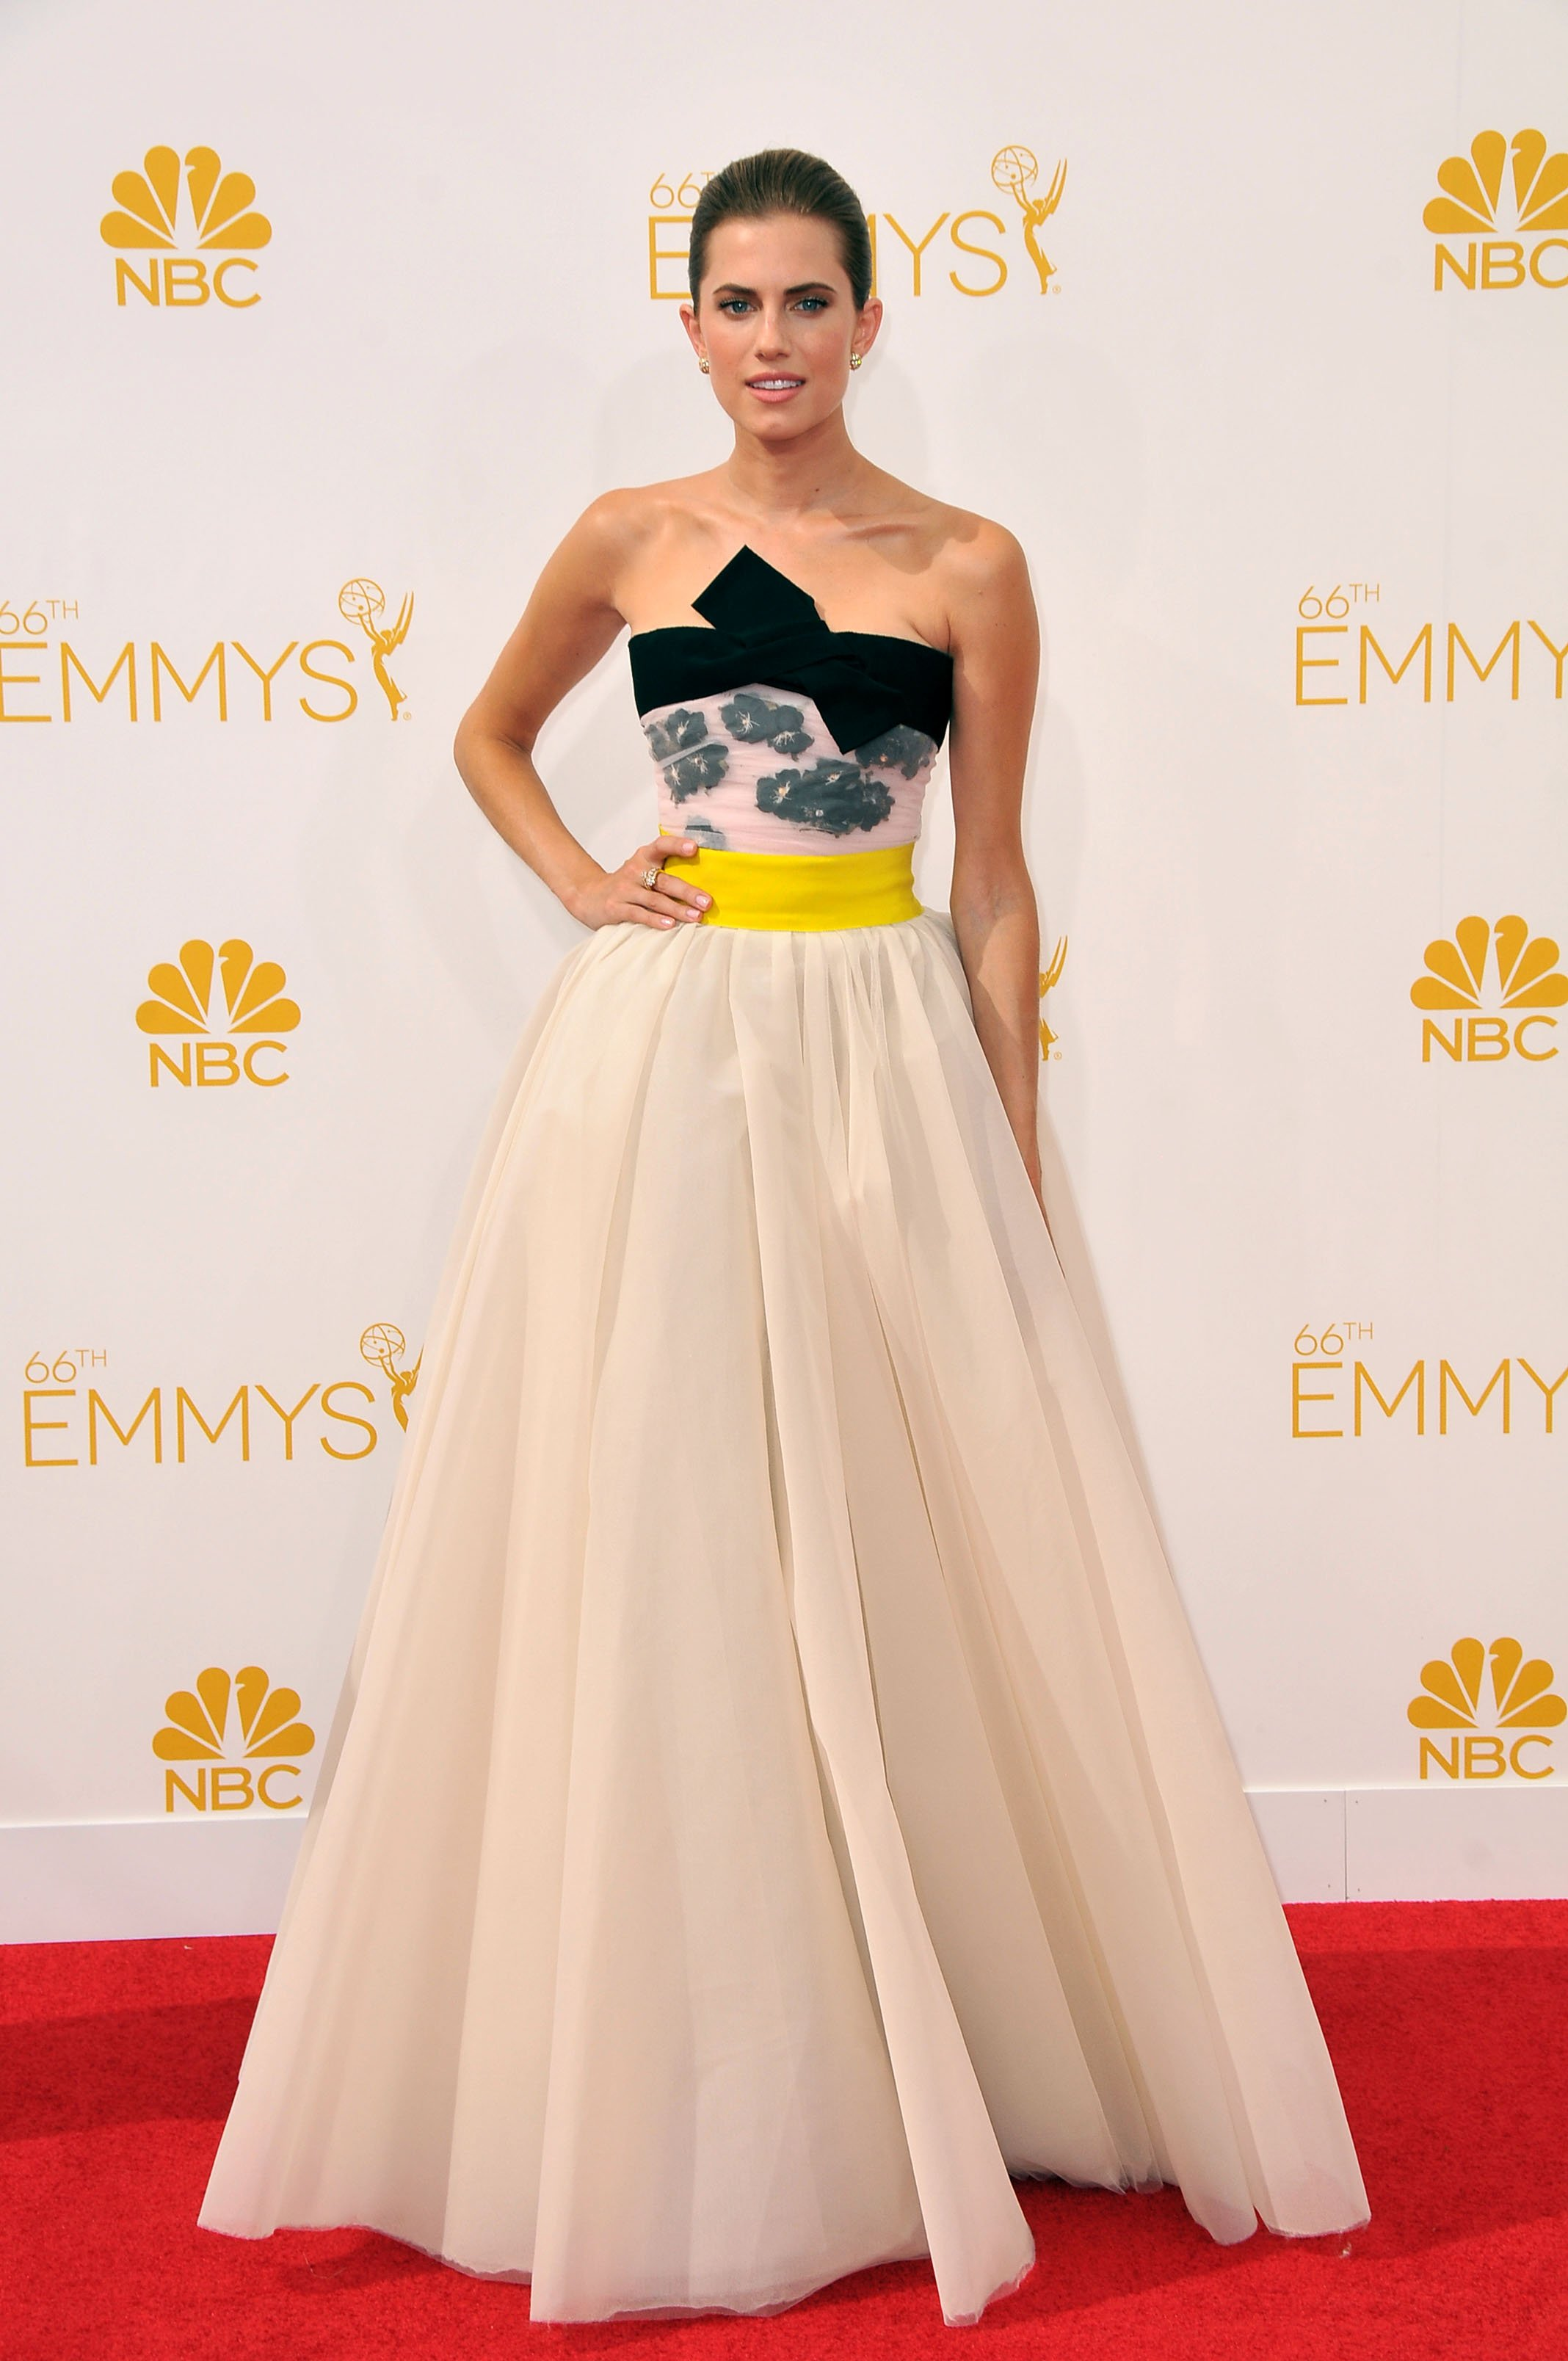 Allison Williams at the 2014 Primetime Emmy Awards August 25, 2014